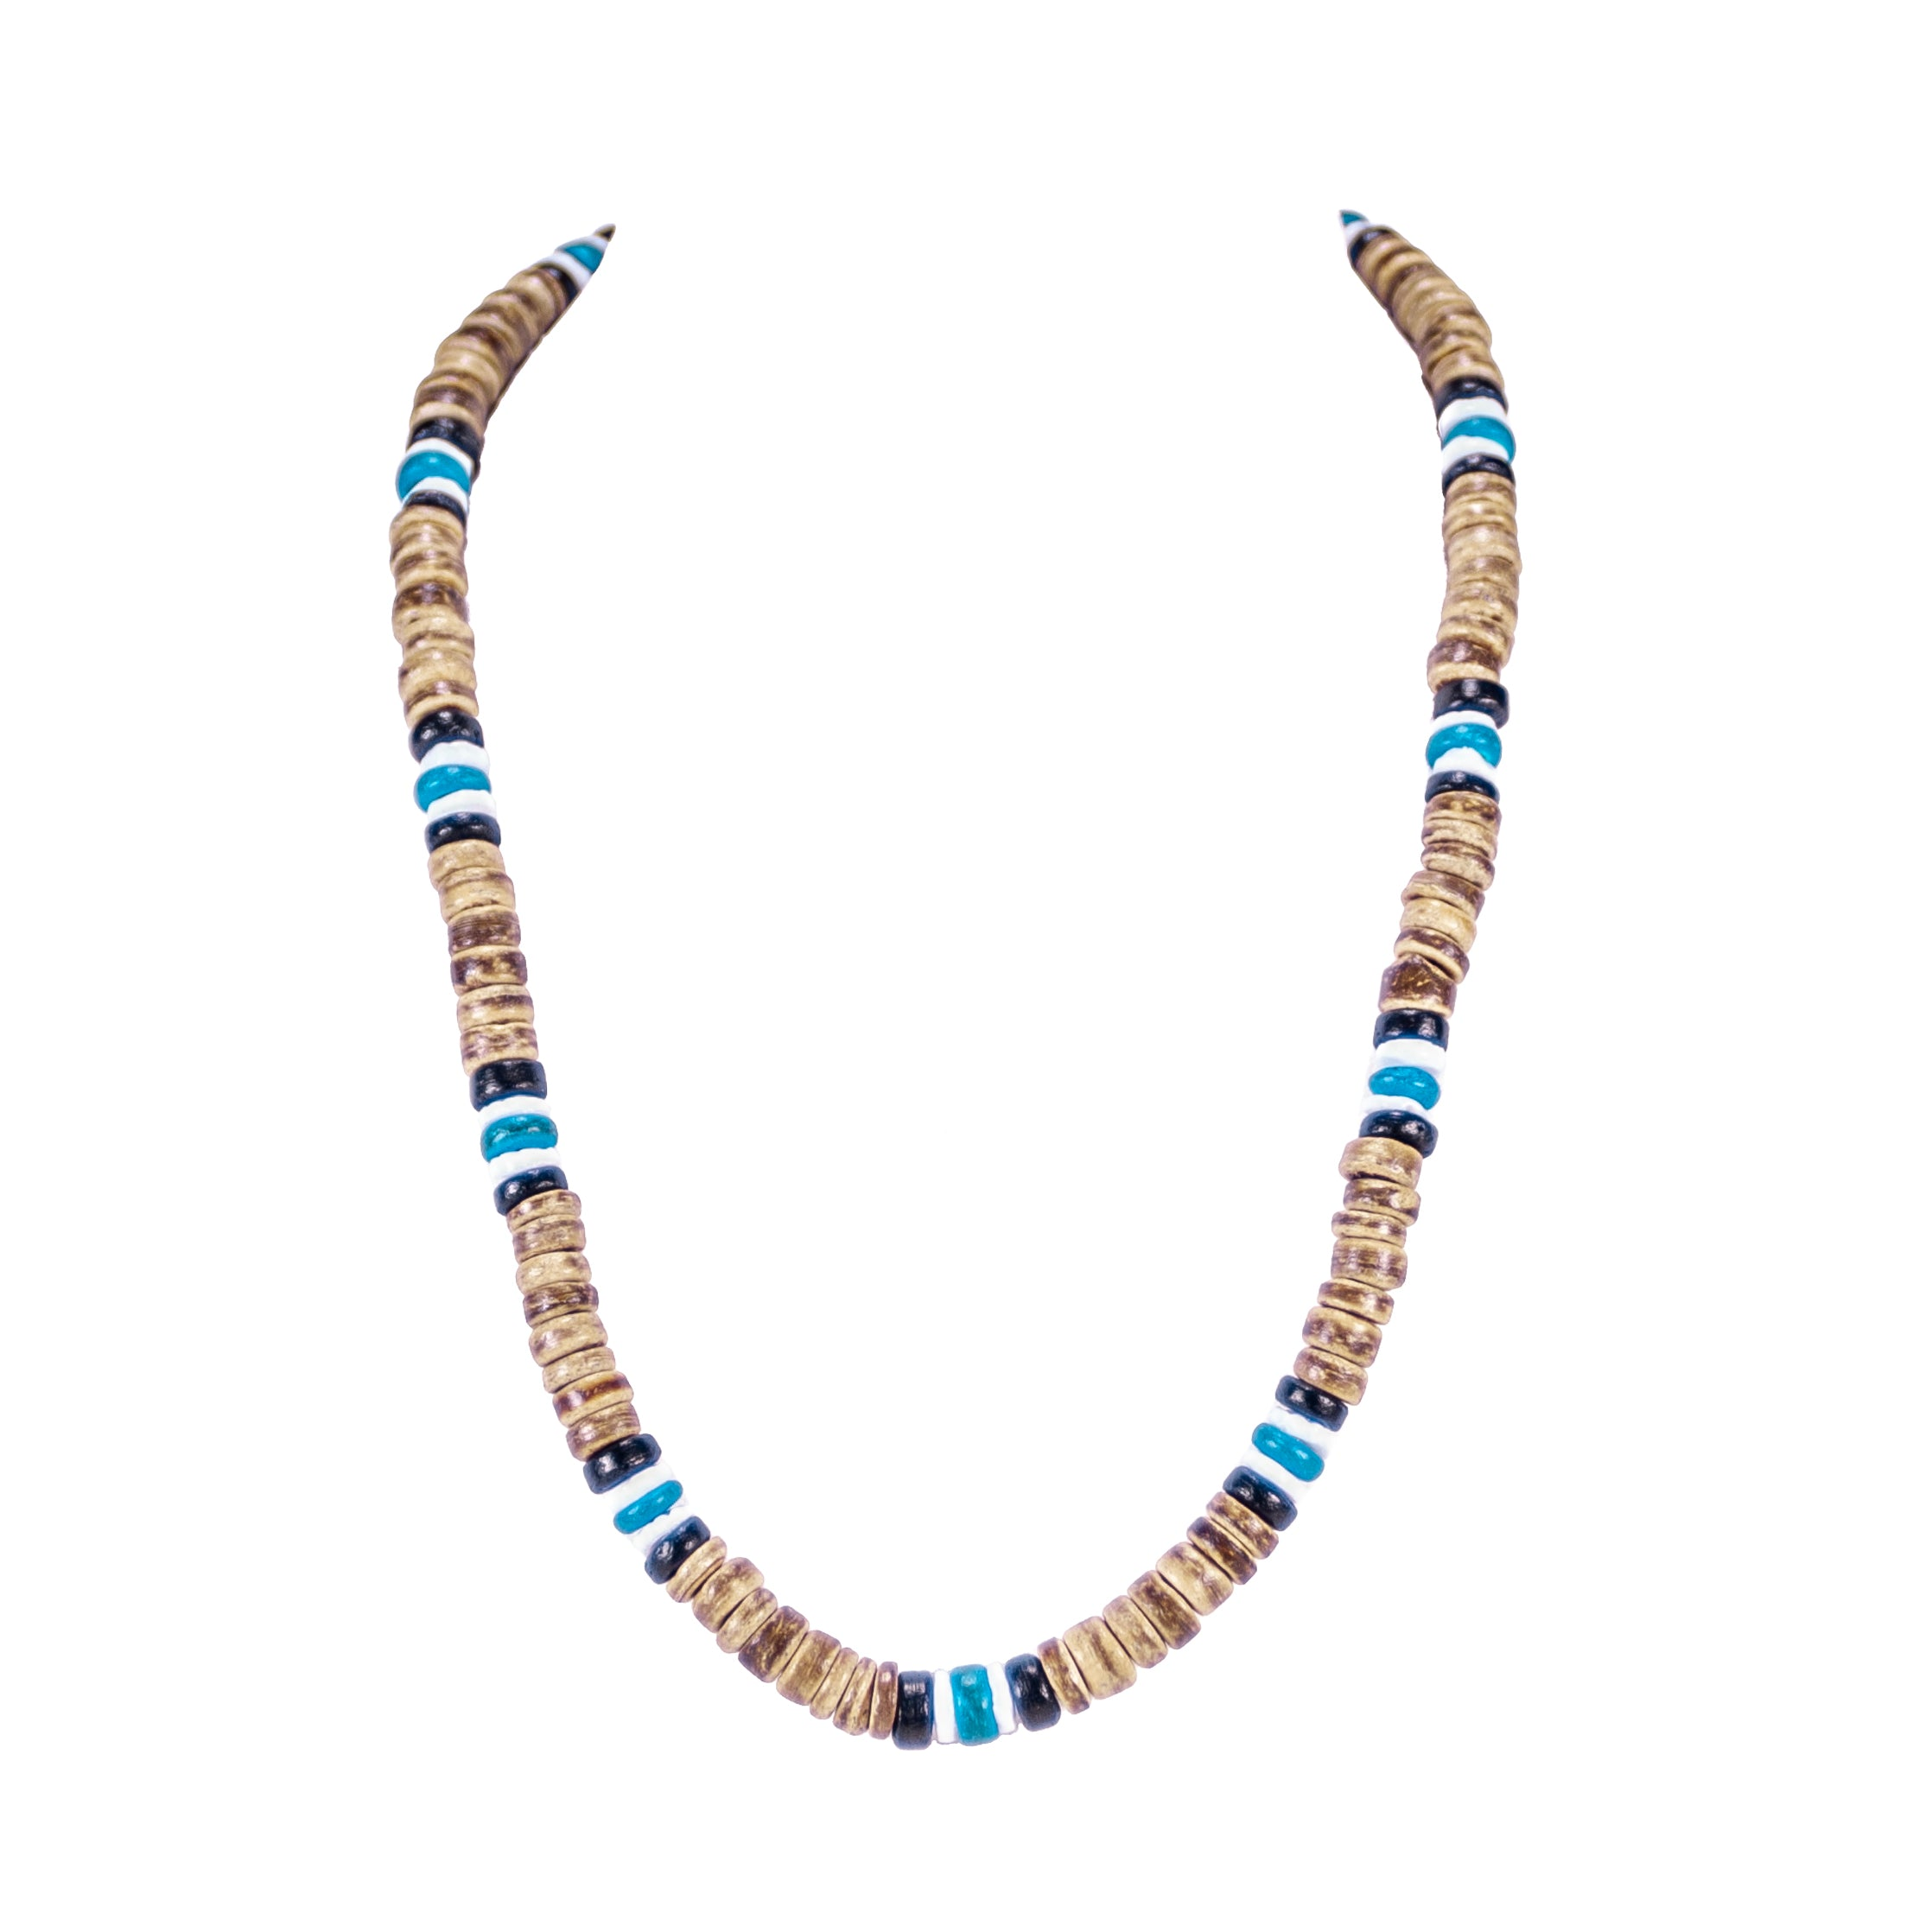 Tiger Brown & Blue Coconut Beads and Puka Shell Beads Necklace & Bracelet Set